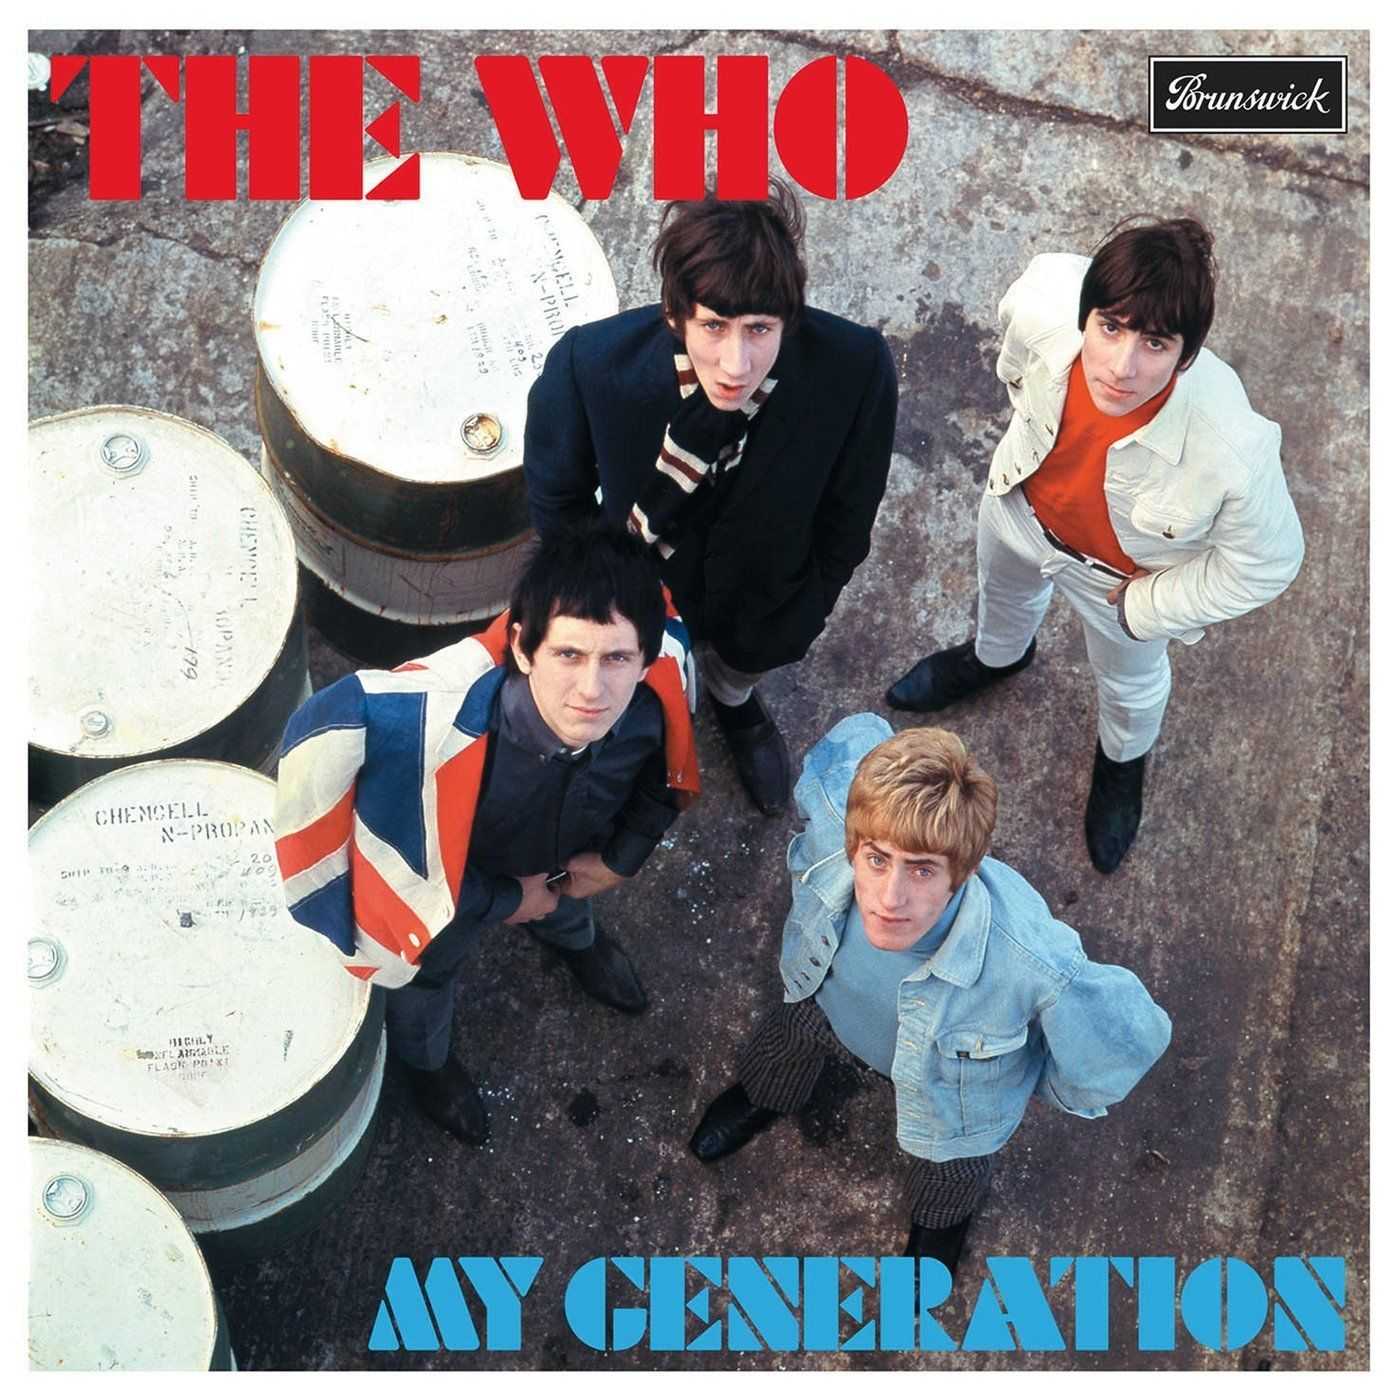 thewho-the-who-my-generation-vinyl-deluxe-triplelp-gerosa-records